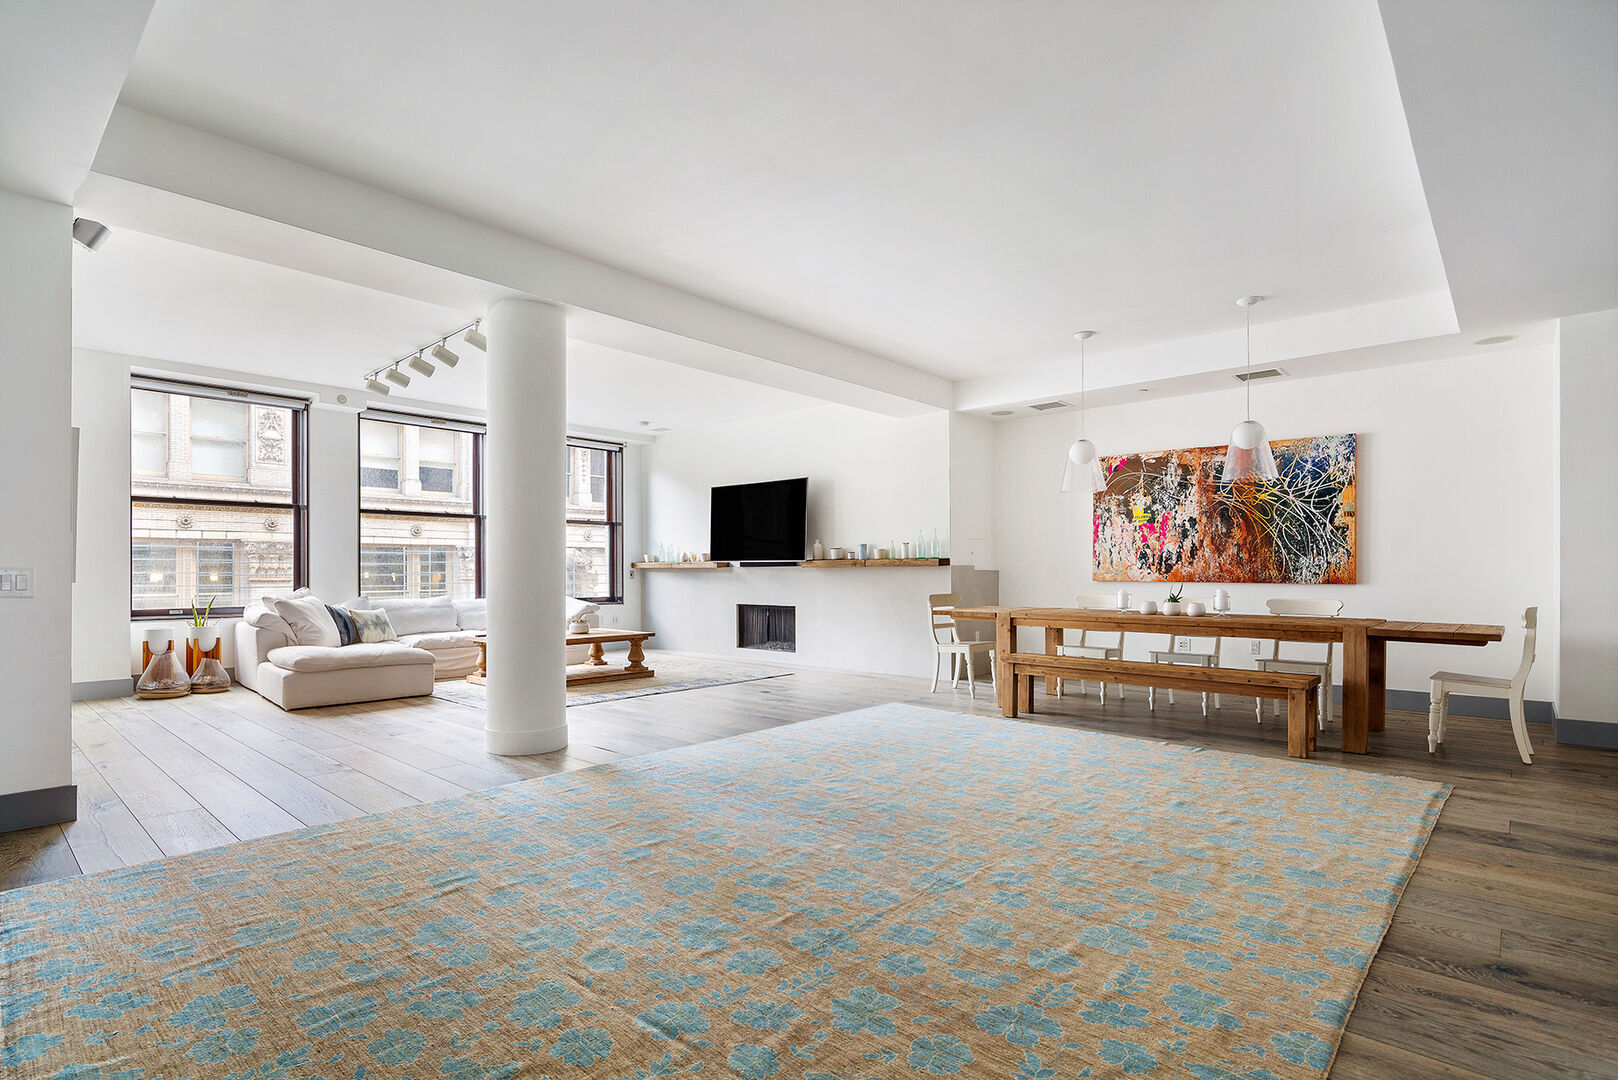 Apartment for sale at 32 West 18th Street, Apt 7-A